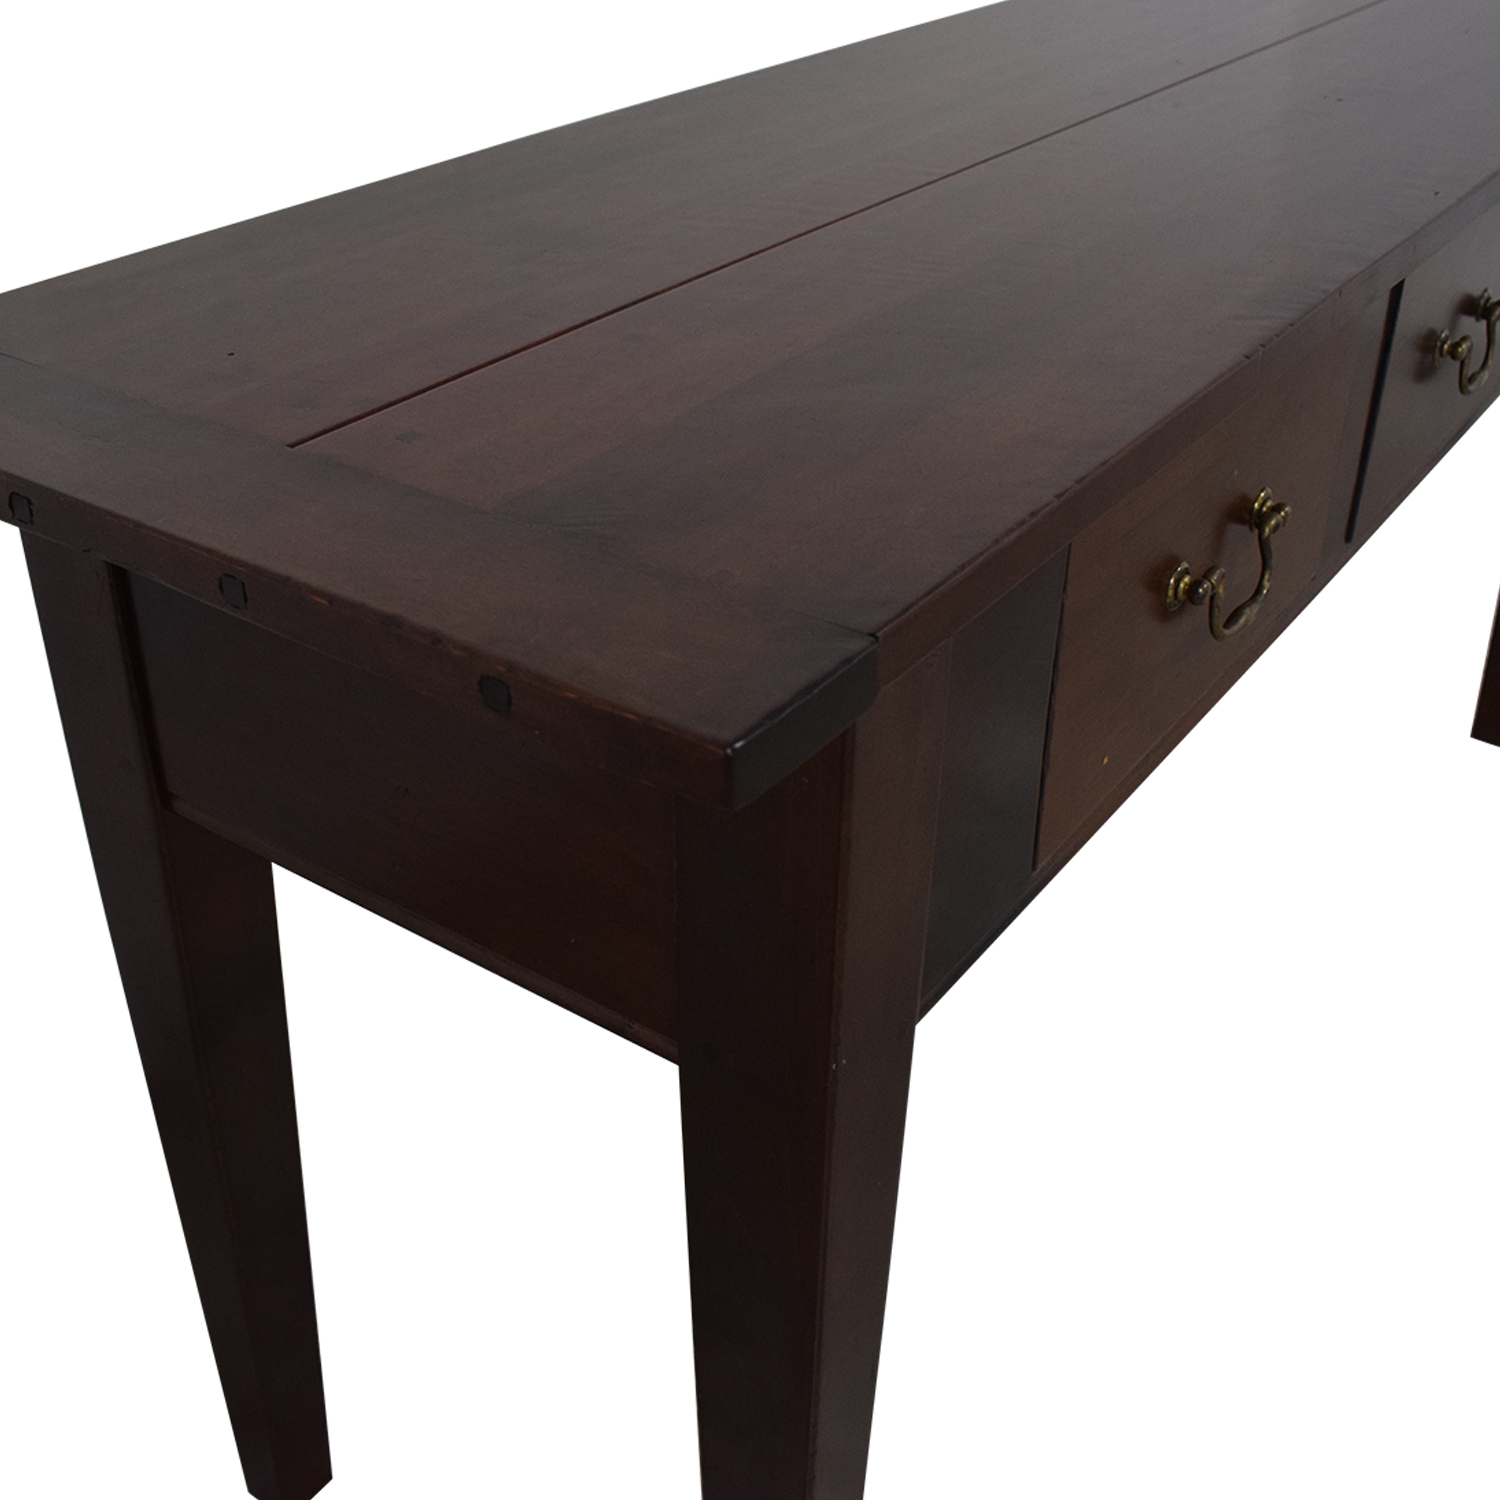 89% OFF - Dark Brown Three Drawer Entry Console / Tables